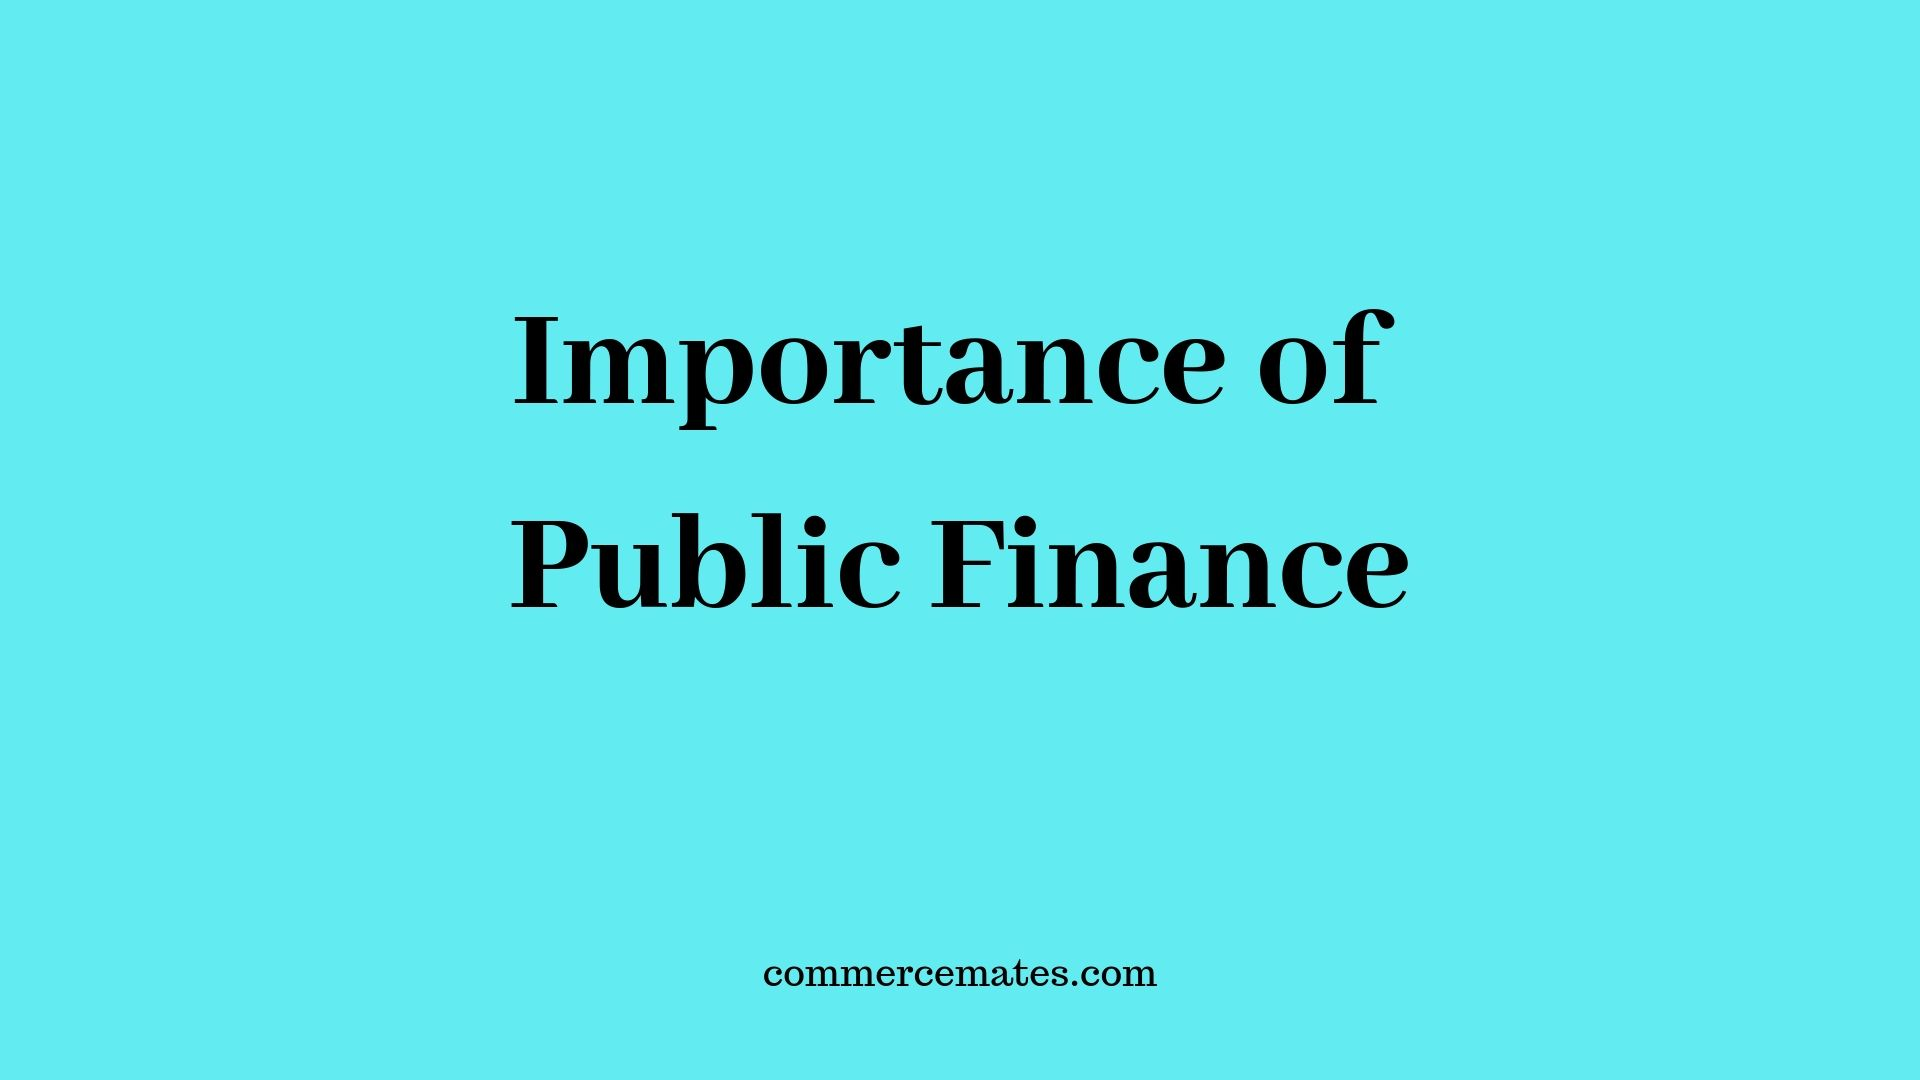 Importance of Public Finance in Developing Countries